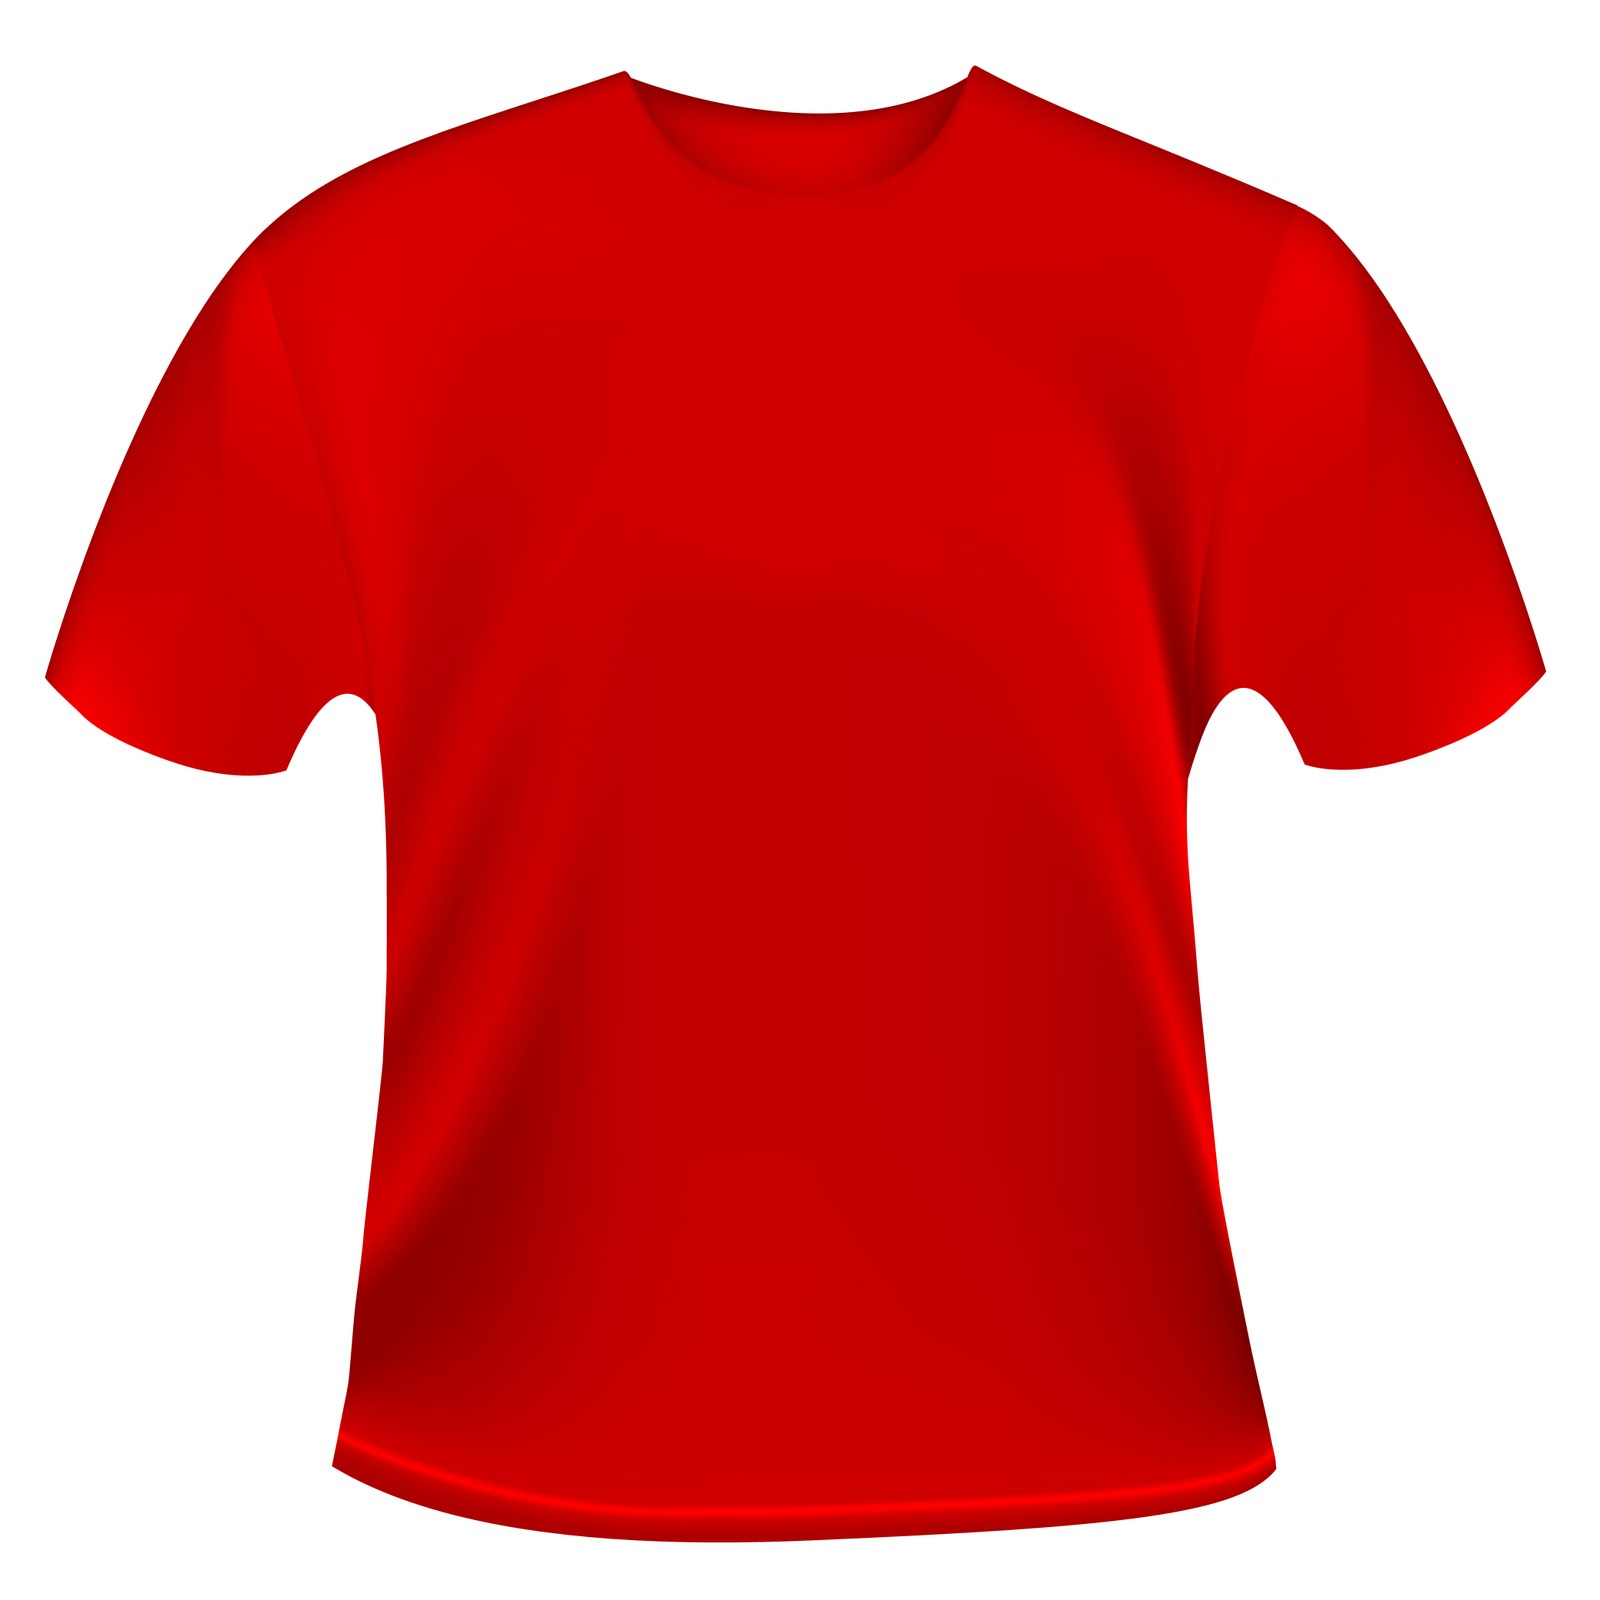 Best Photos of Red Blank T-Shirt Template - Red Blank T-Shirts ...